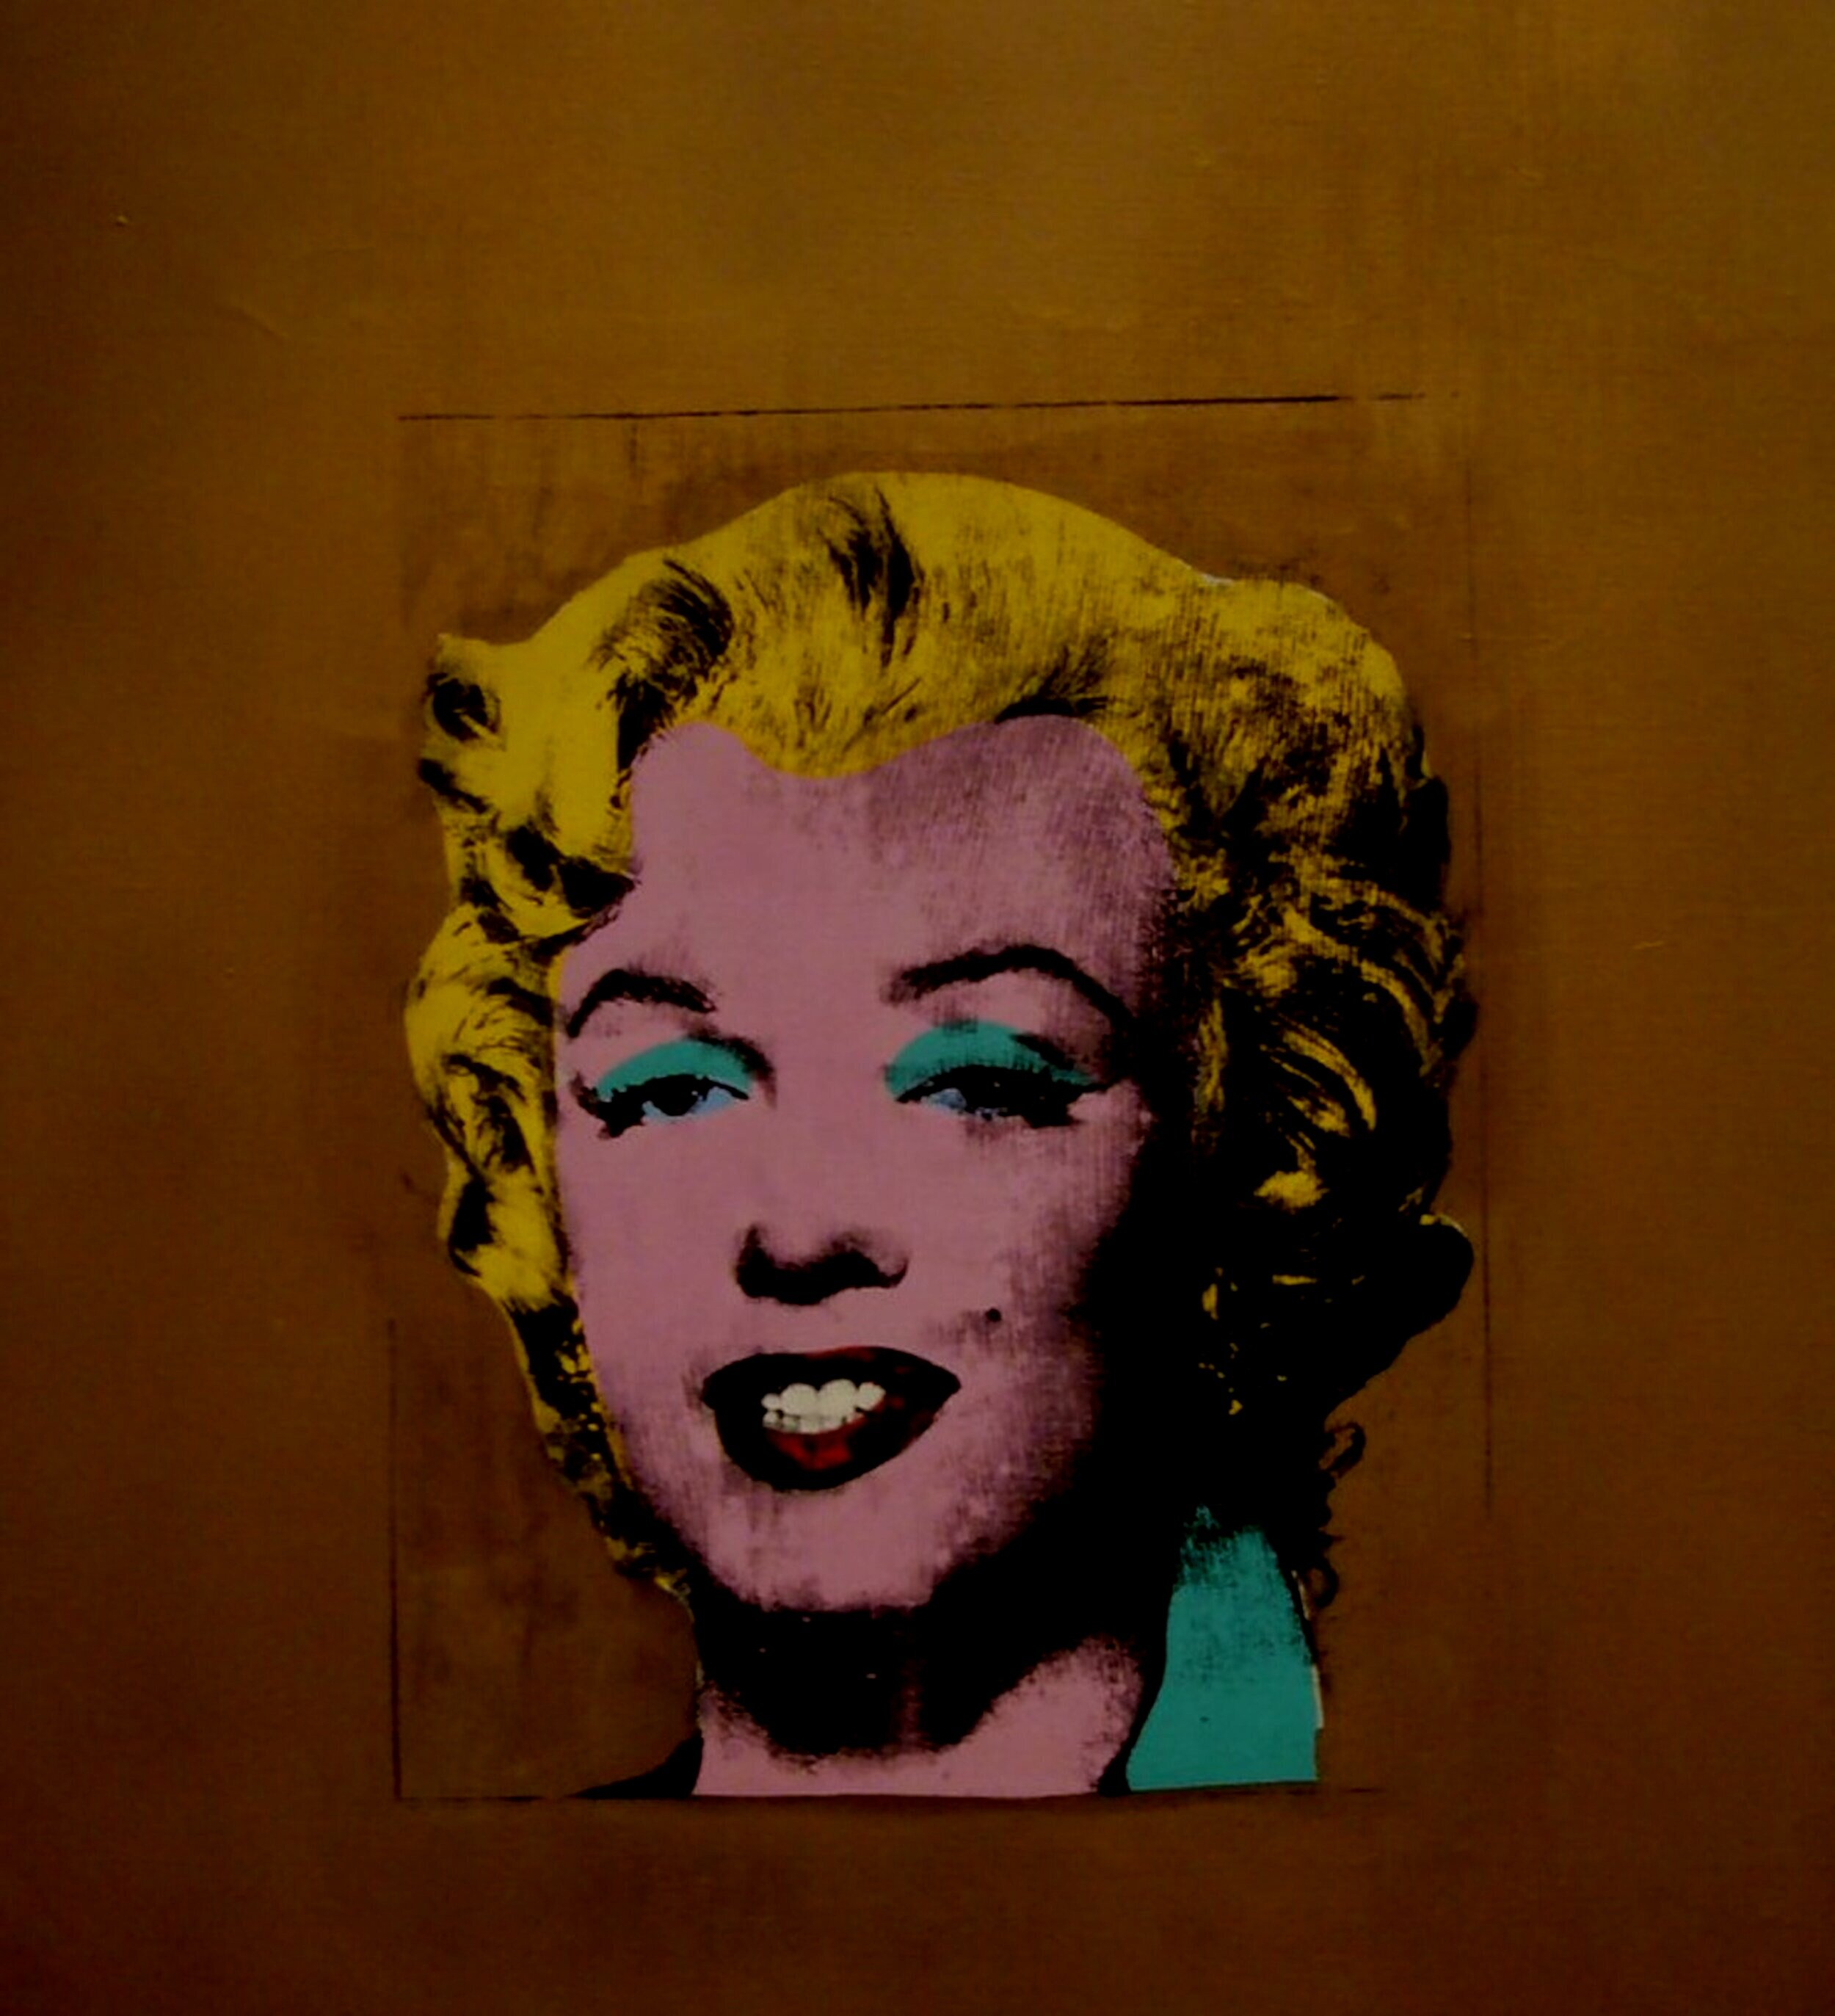 """""""Don't think about making art, just get it done. Let everyone else decide if it's good or bad, whether they love it or hate it. While they are deciding, make even more art."""" - -Andy Warhol"""